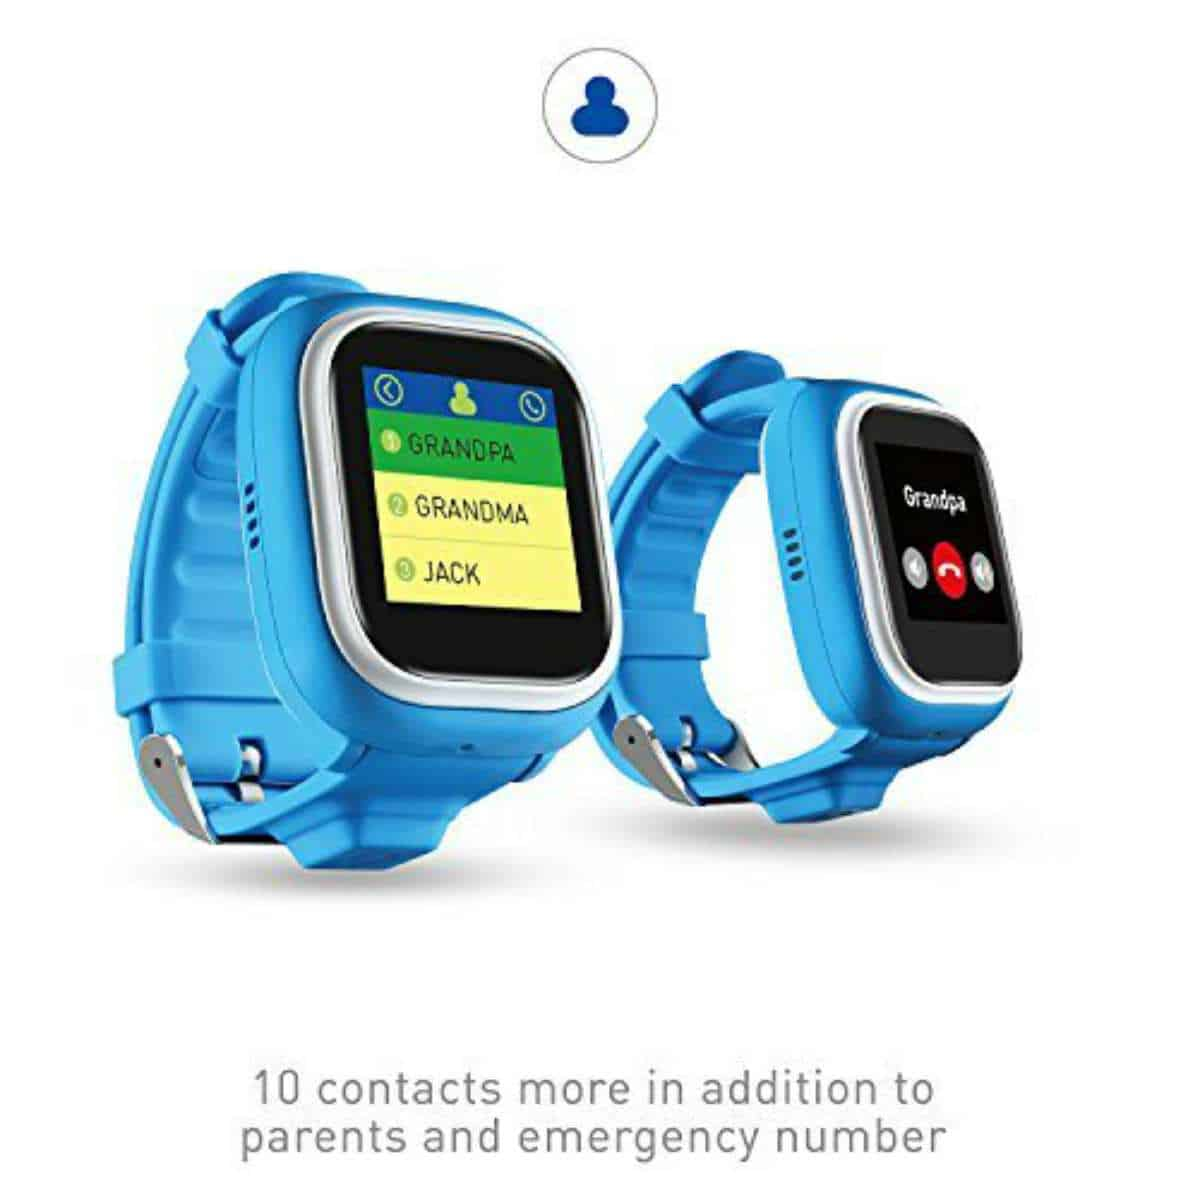 TickTalk 2.0 Kids' Smart Watch | Best GPS-Enabled Kids Watches | Child Safety For The Modern Family